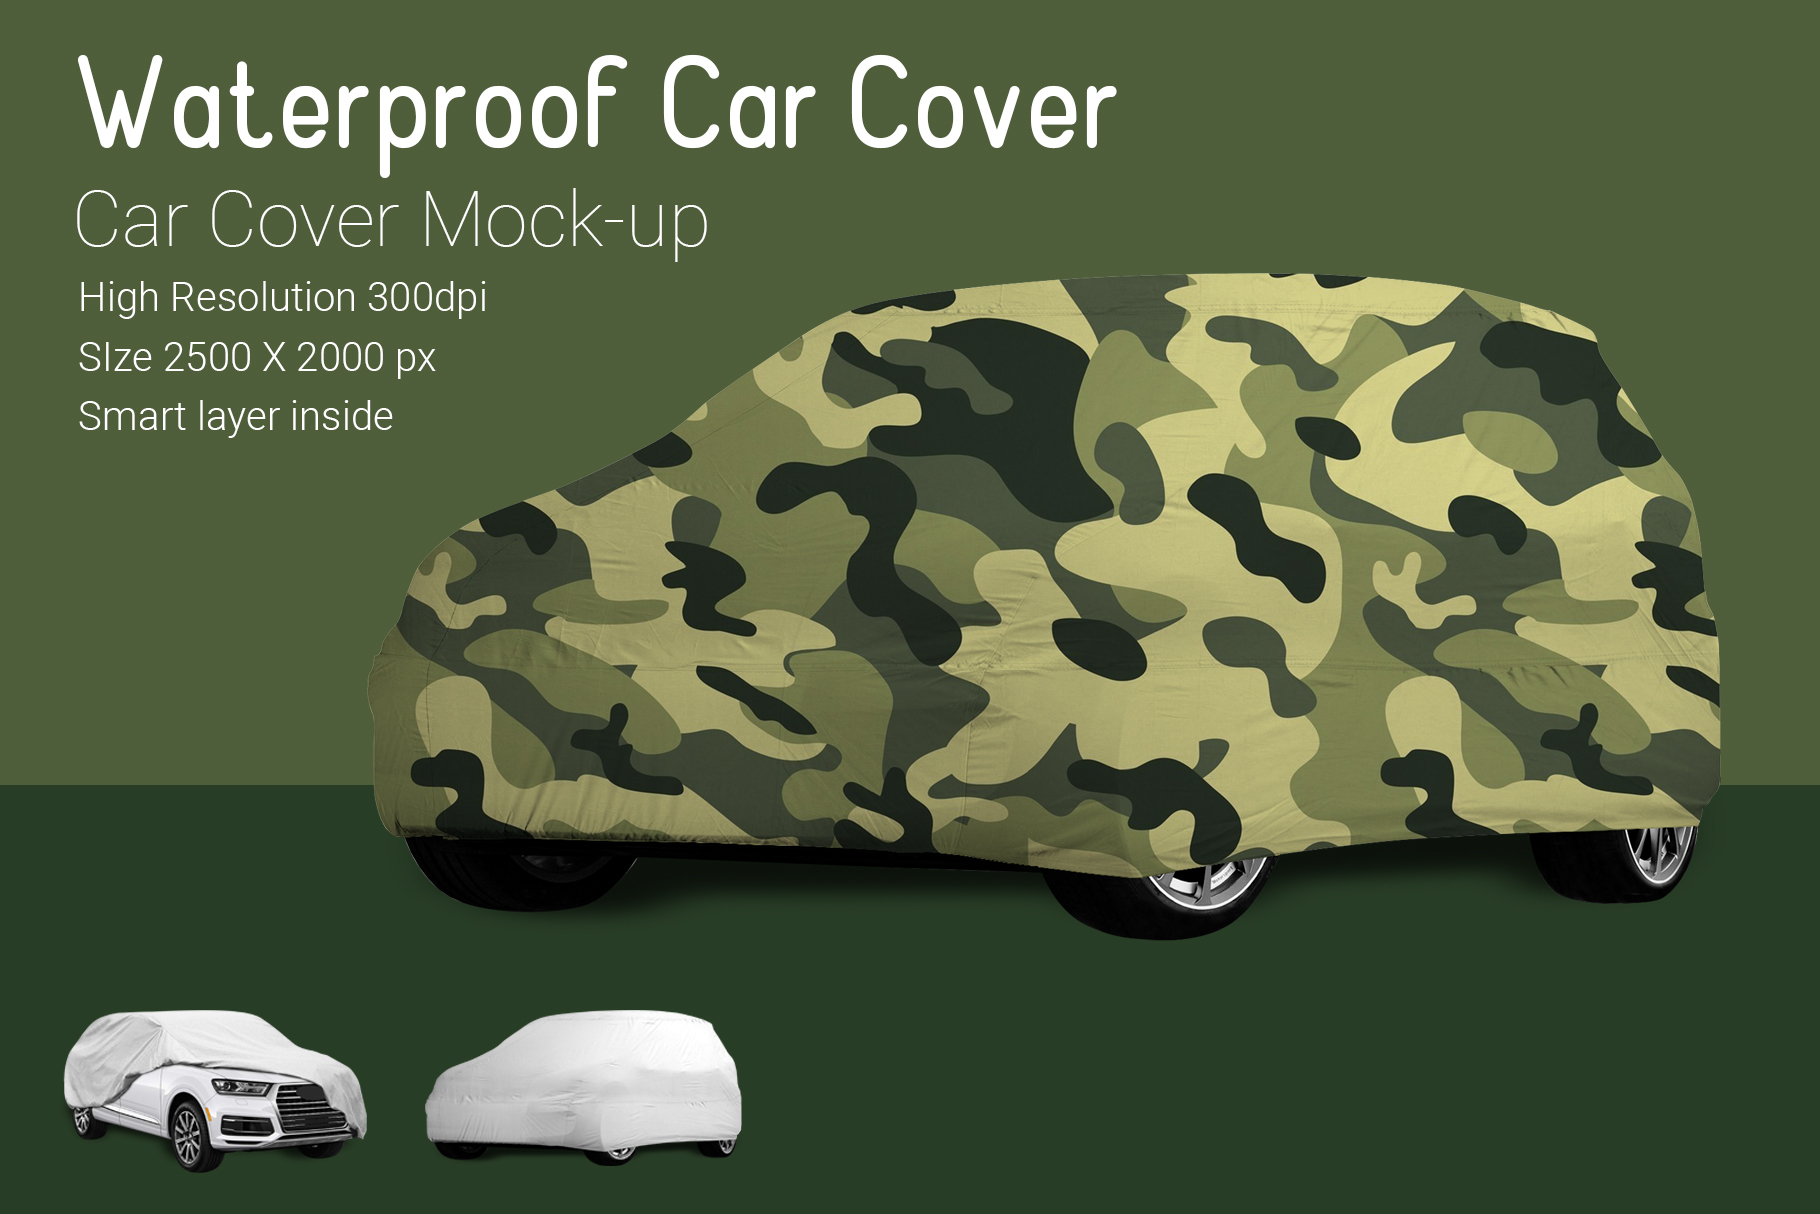 Car Cover Mock-Up example image 3